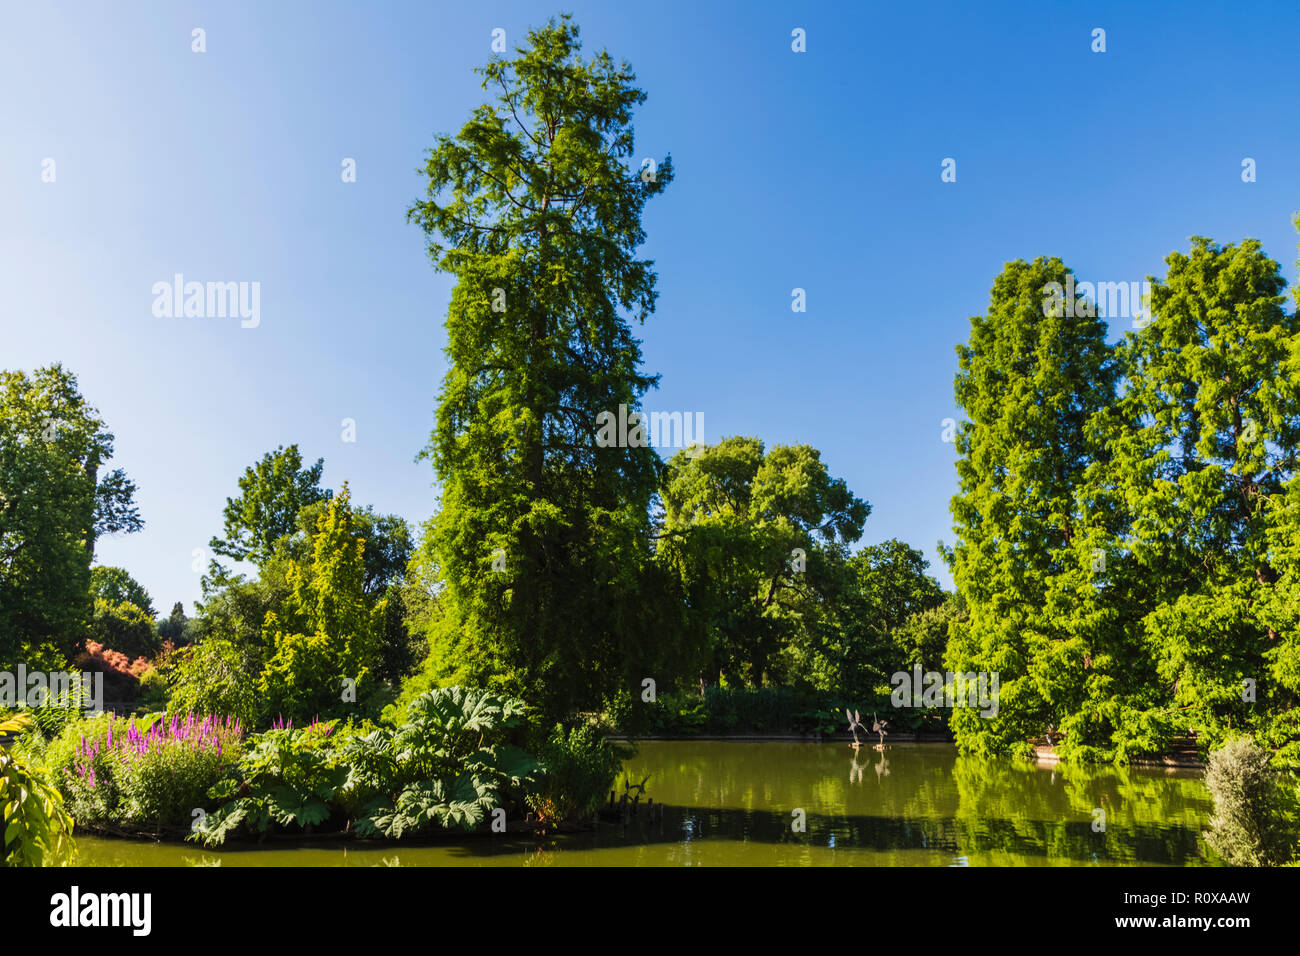 England, Surrey, Guildford, Wisley, The Royal Horticultural Society Garden, Seven Acres Pond and The Japanese Pagoda - Stock Image